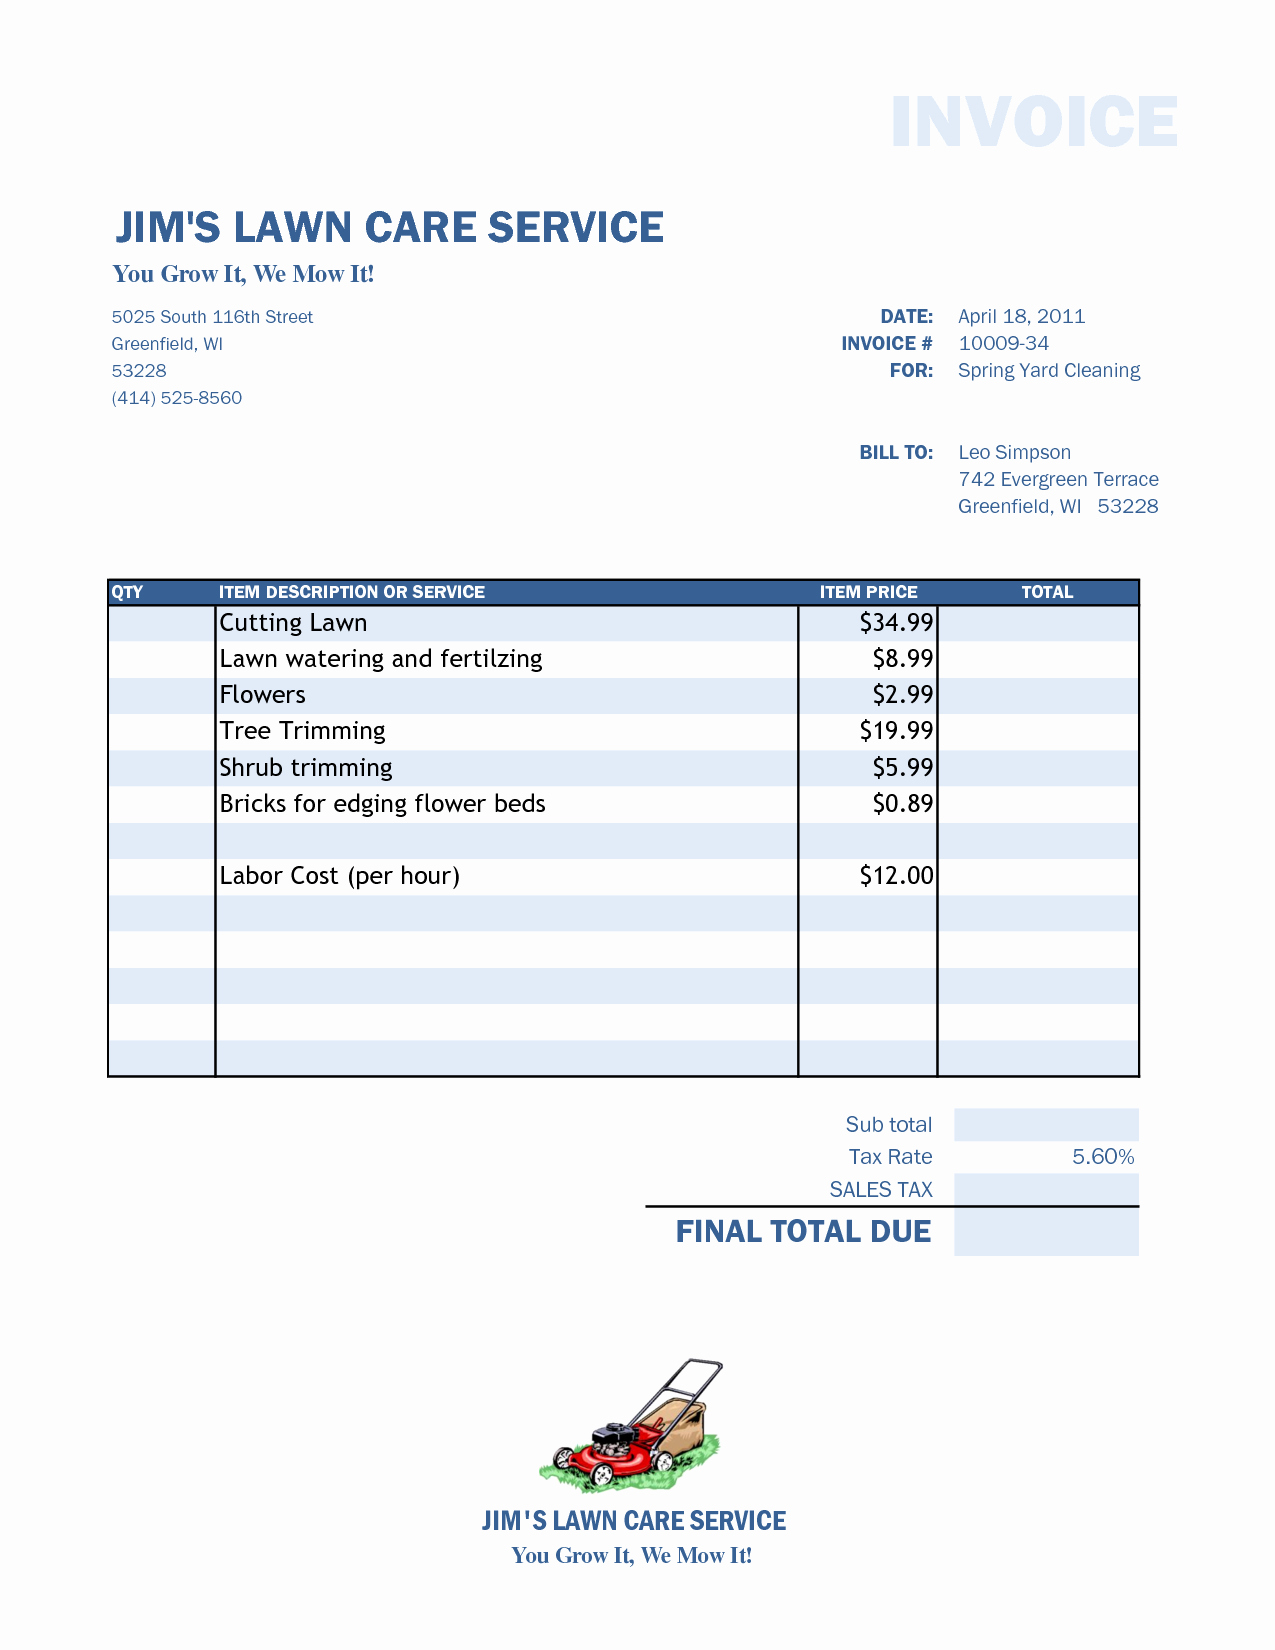 Lawn Service Invoice Template New Lawn Care Invoice Template Word